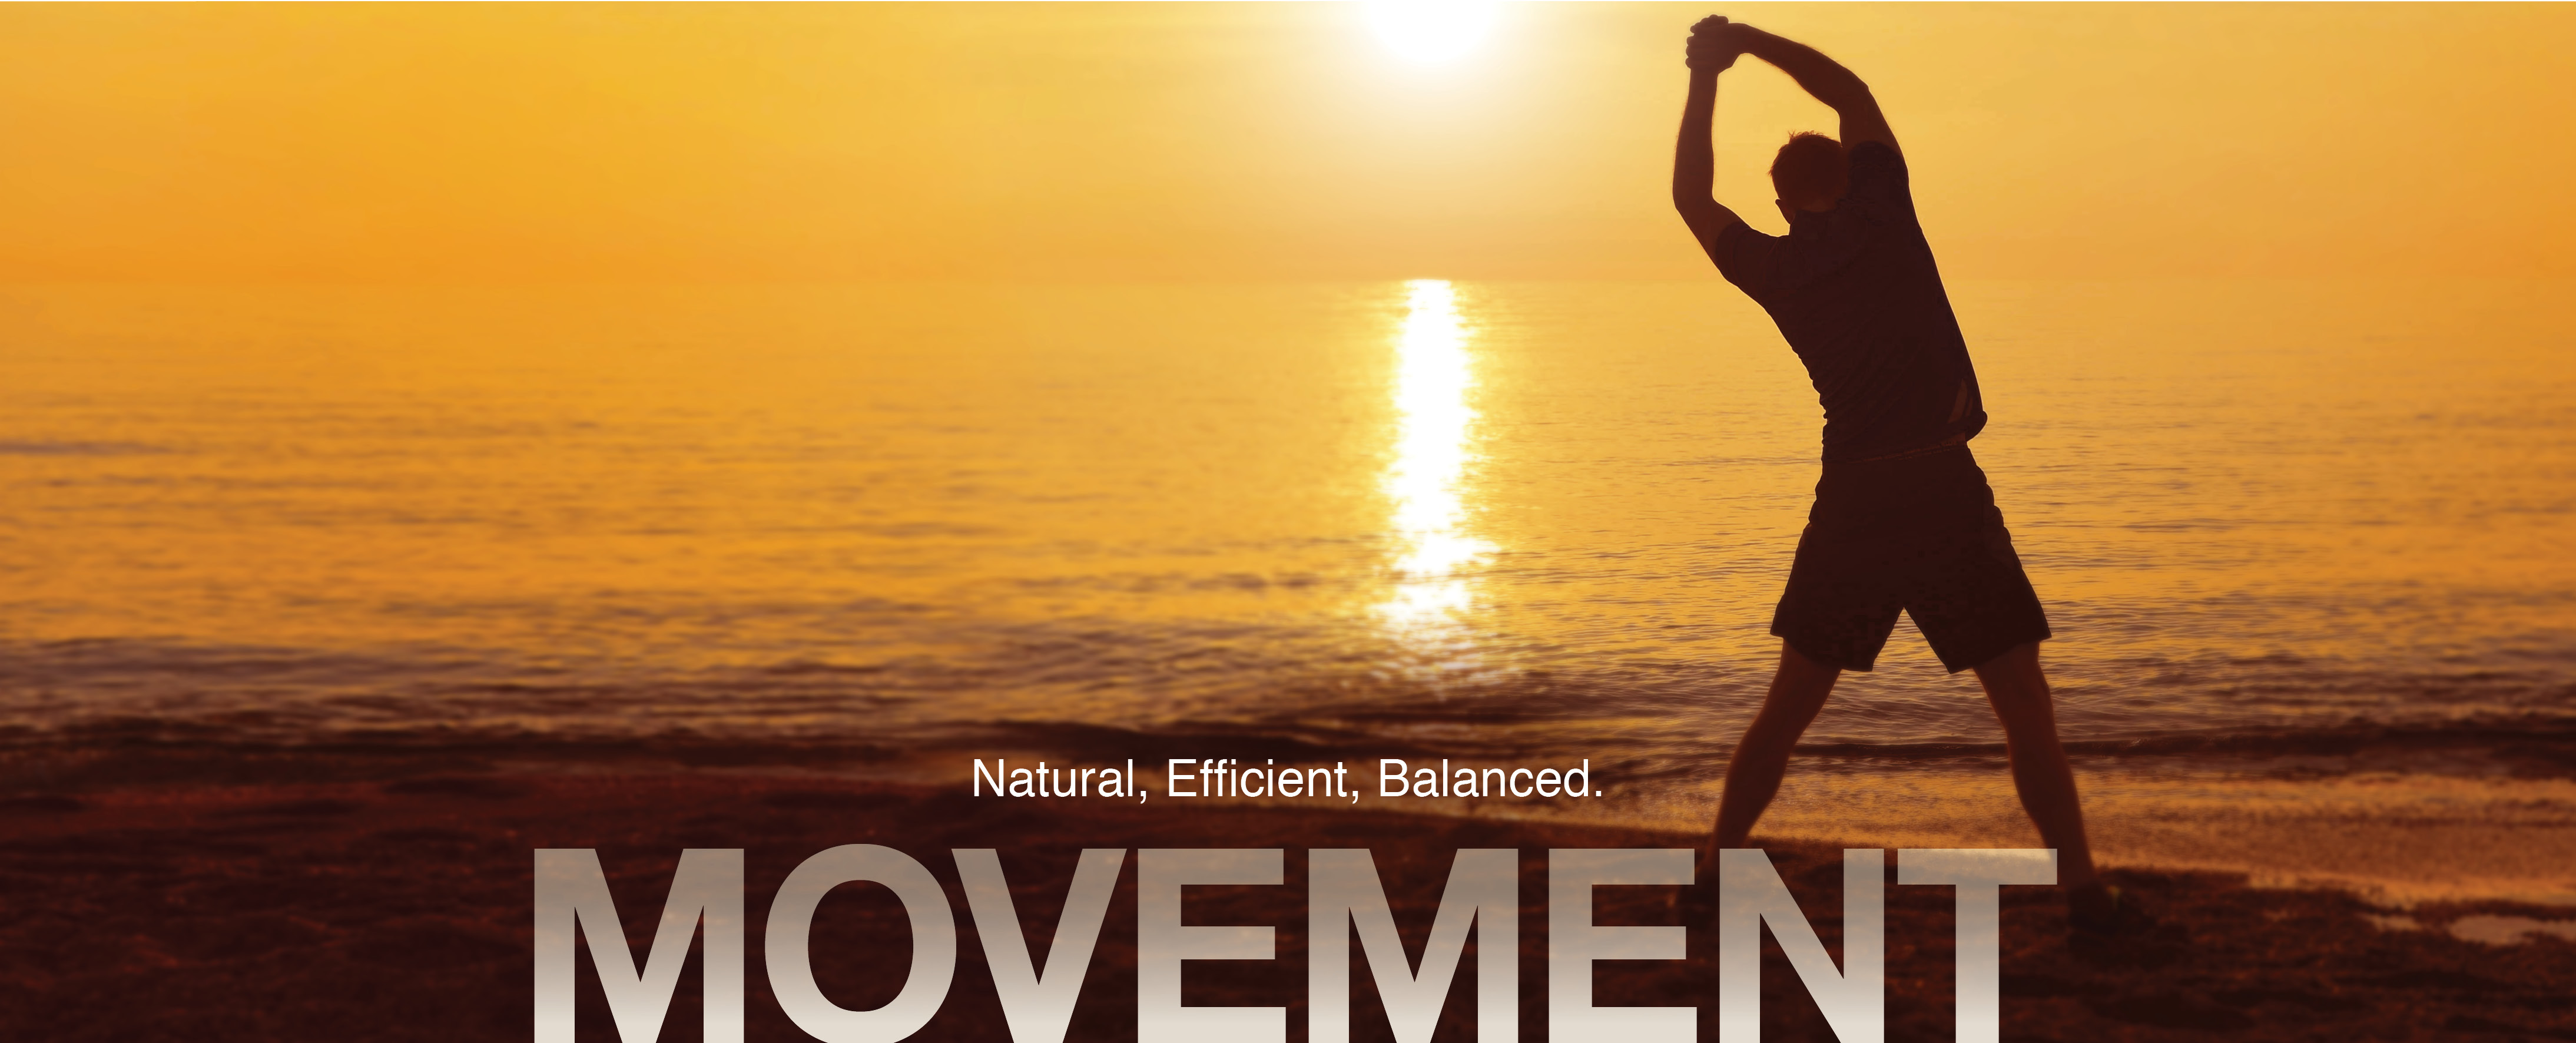 Great-Lakes-Chiropractic-Movement-Center-Nature-Movement_Slide